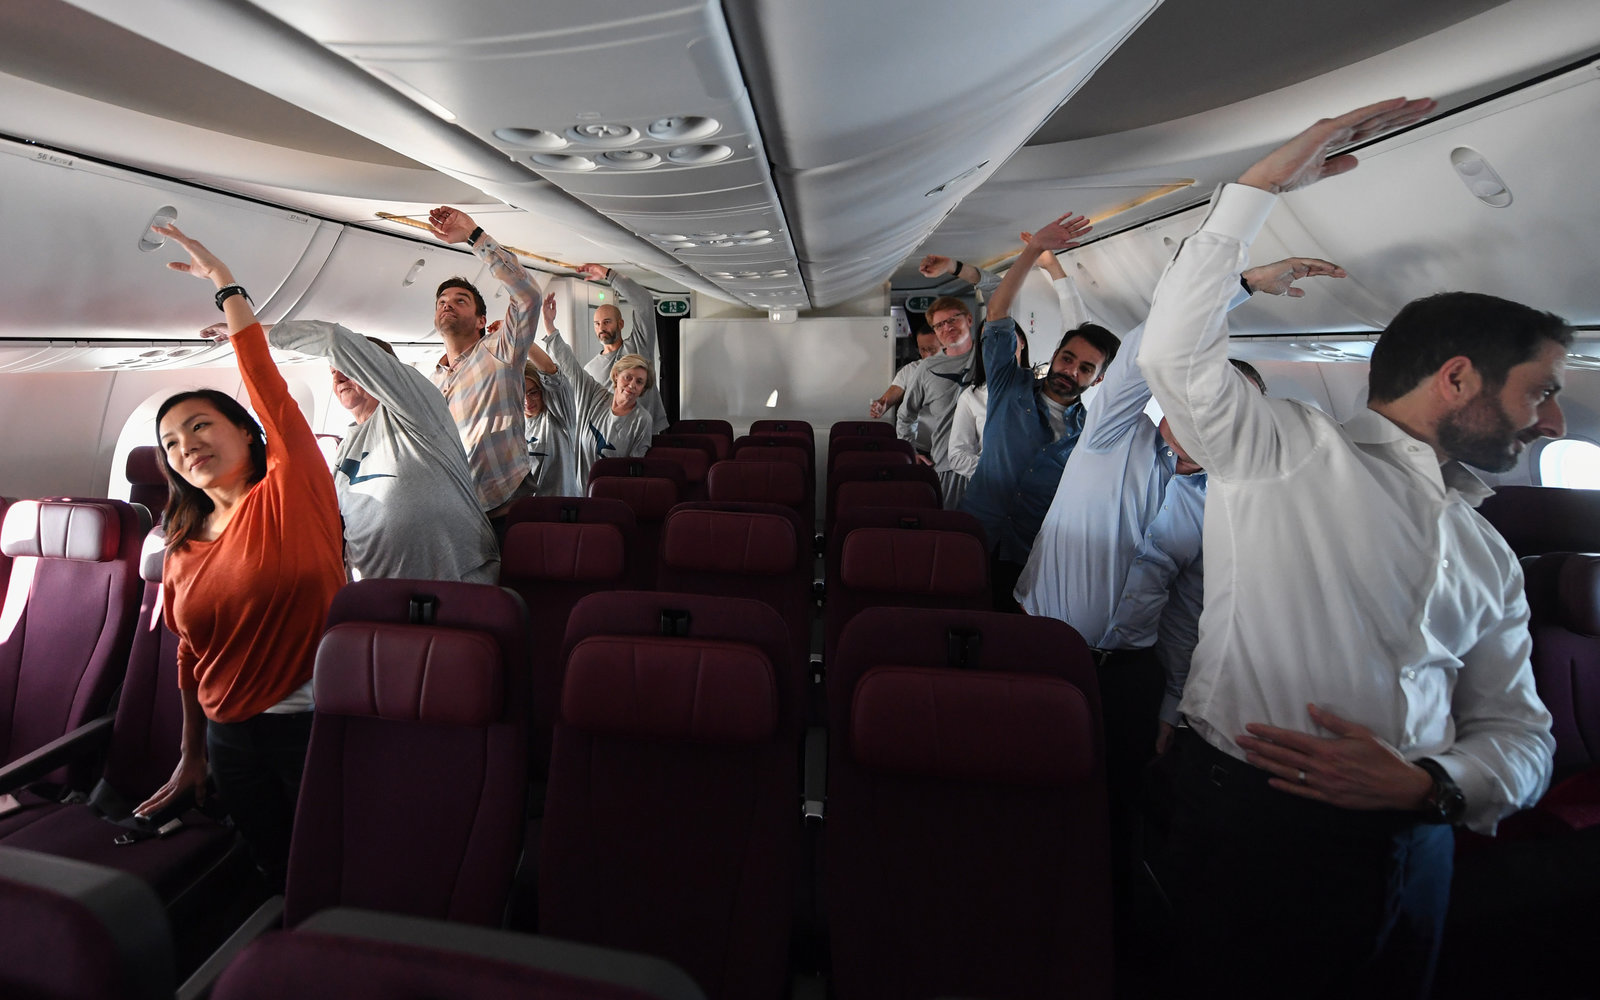 Passengers stretching on a flight from London to Sydney